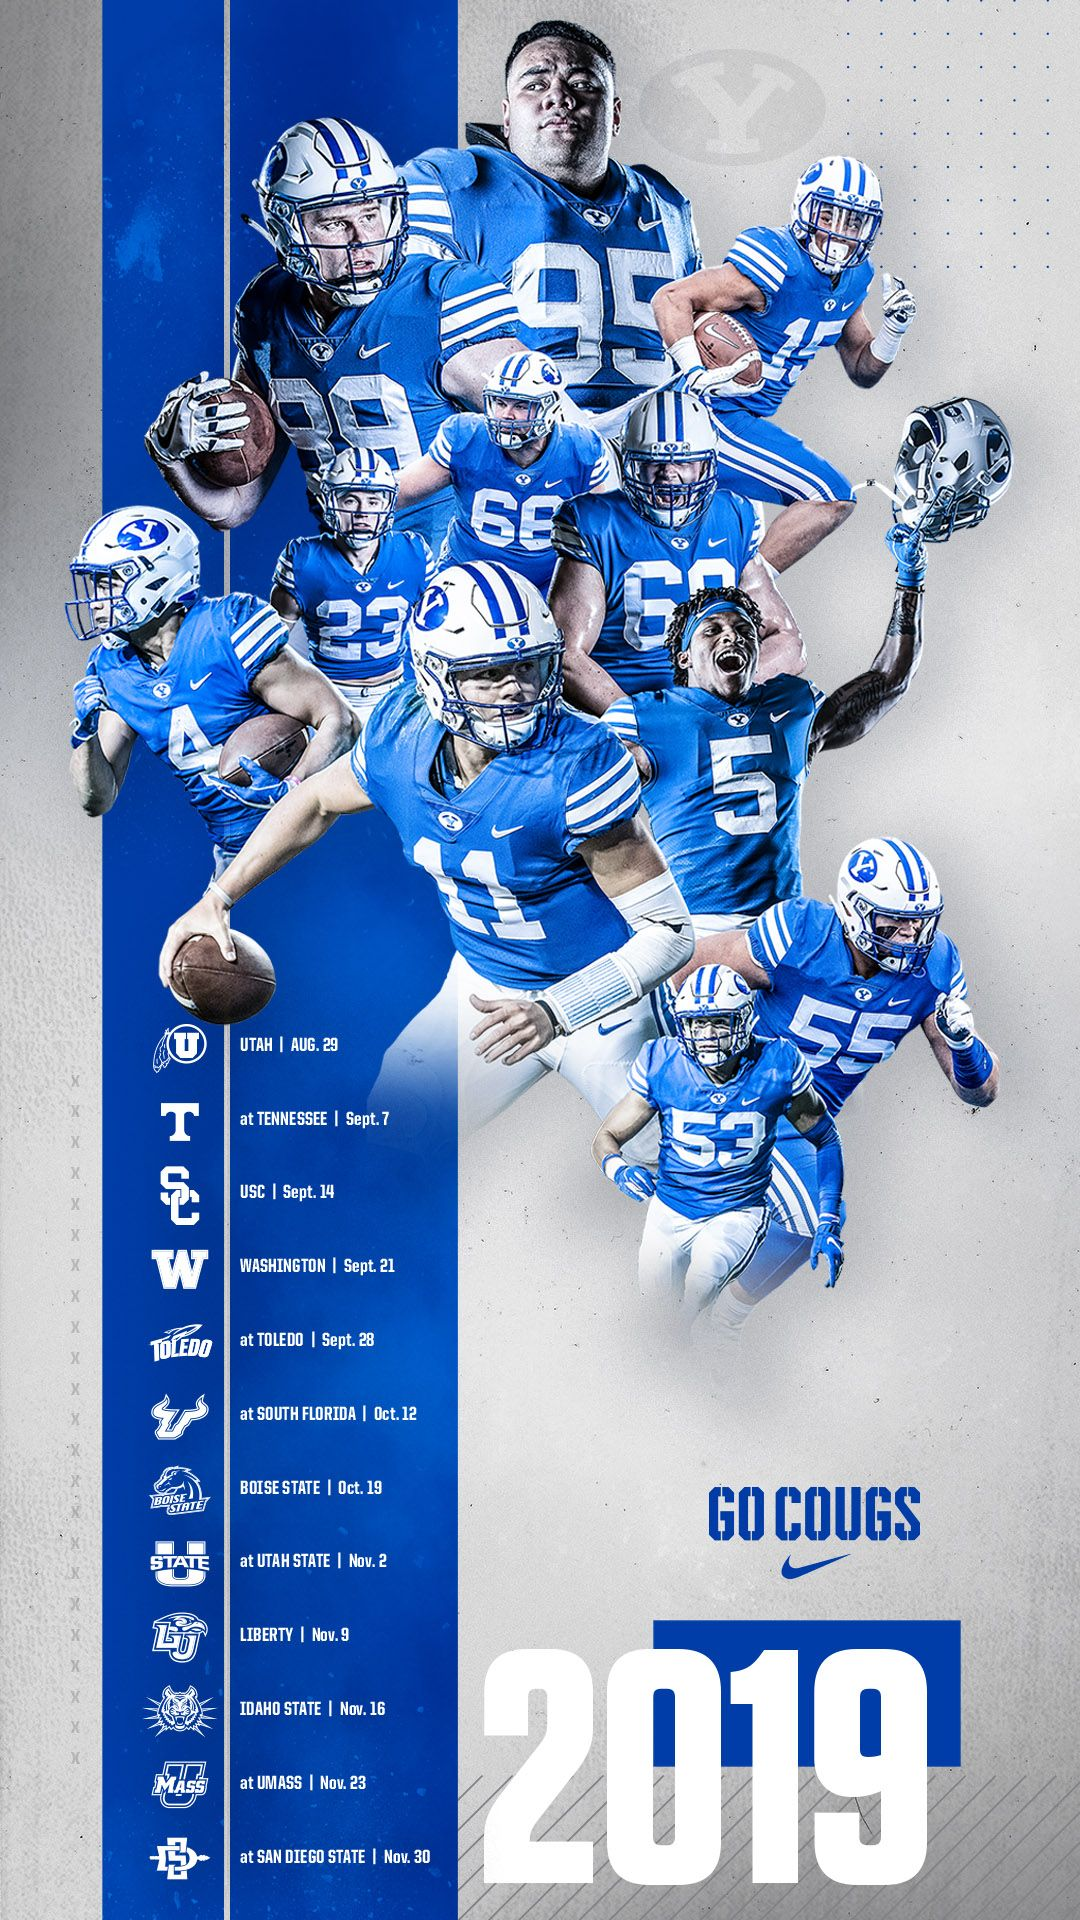 Byu Football Poster 2019 Byu Football Football Poster Sports Graphic Design